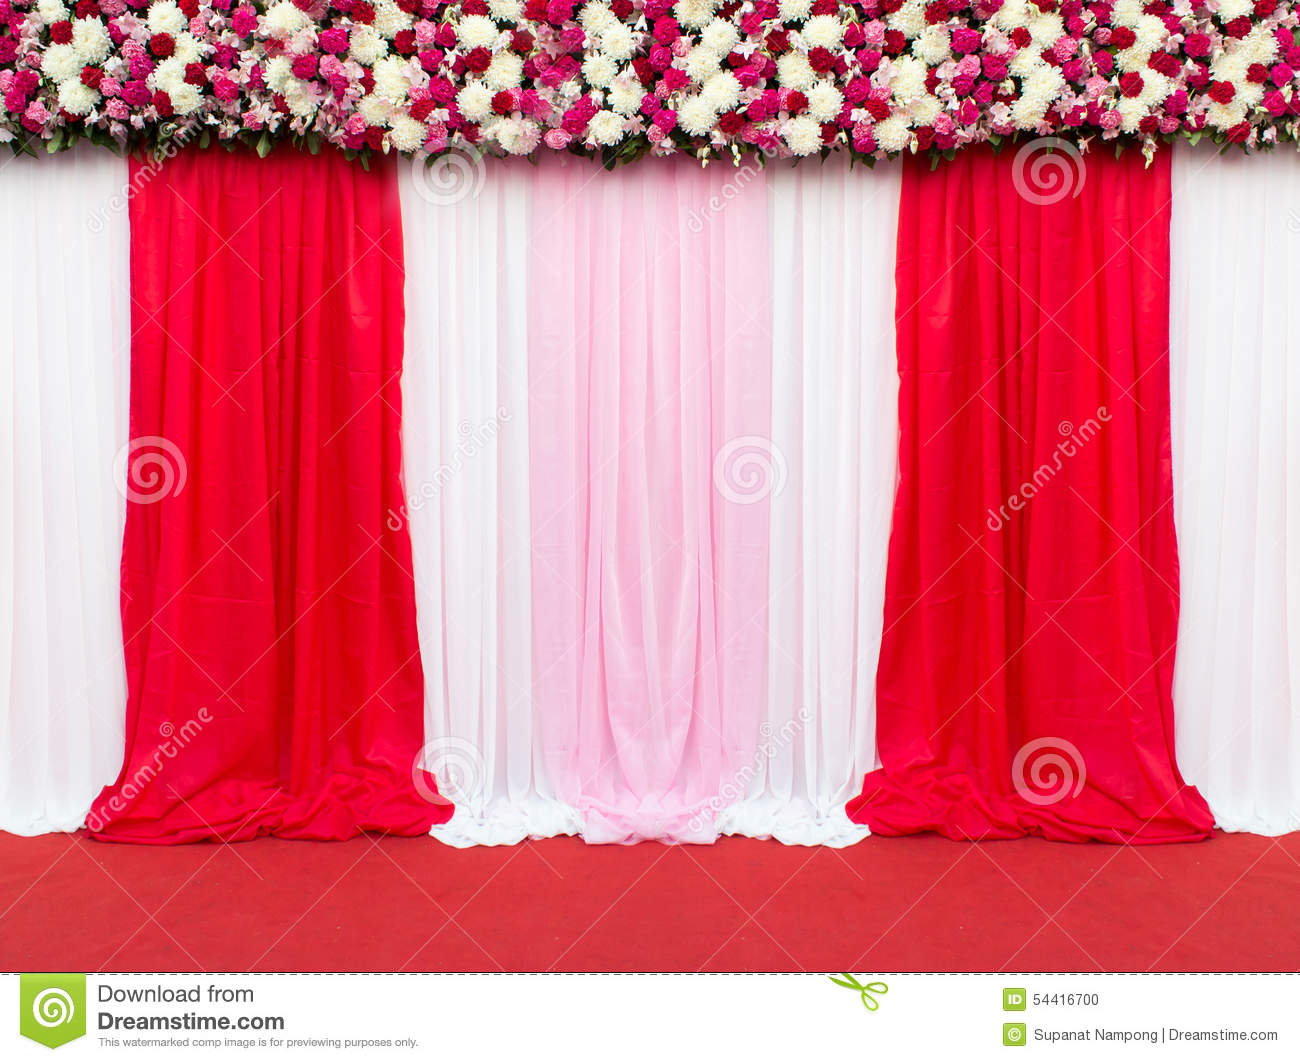 Wedding stage decoration for take picture stock photo for Marriage decoration photos